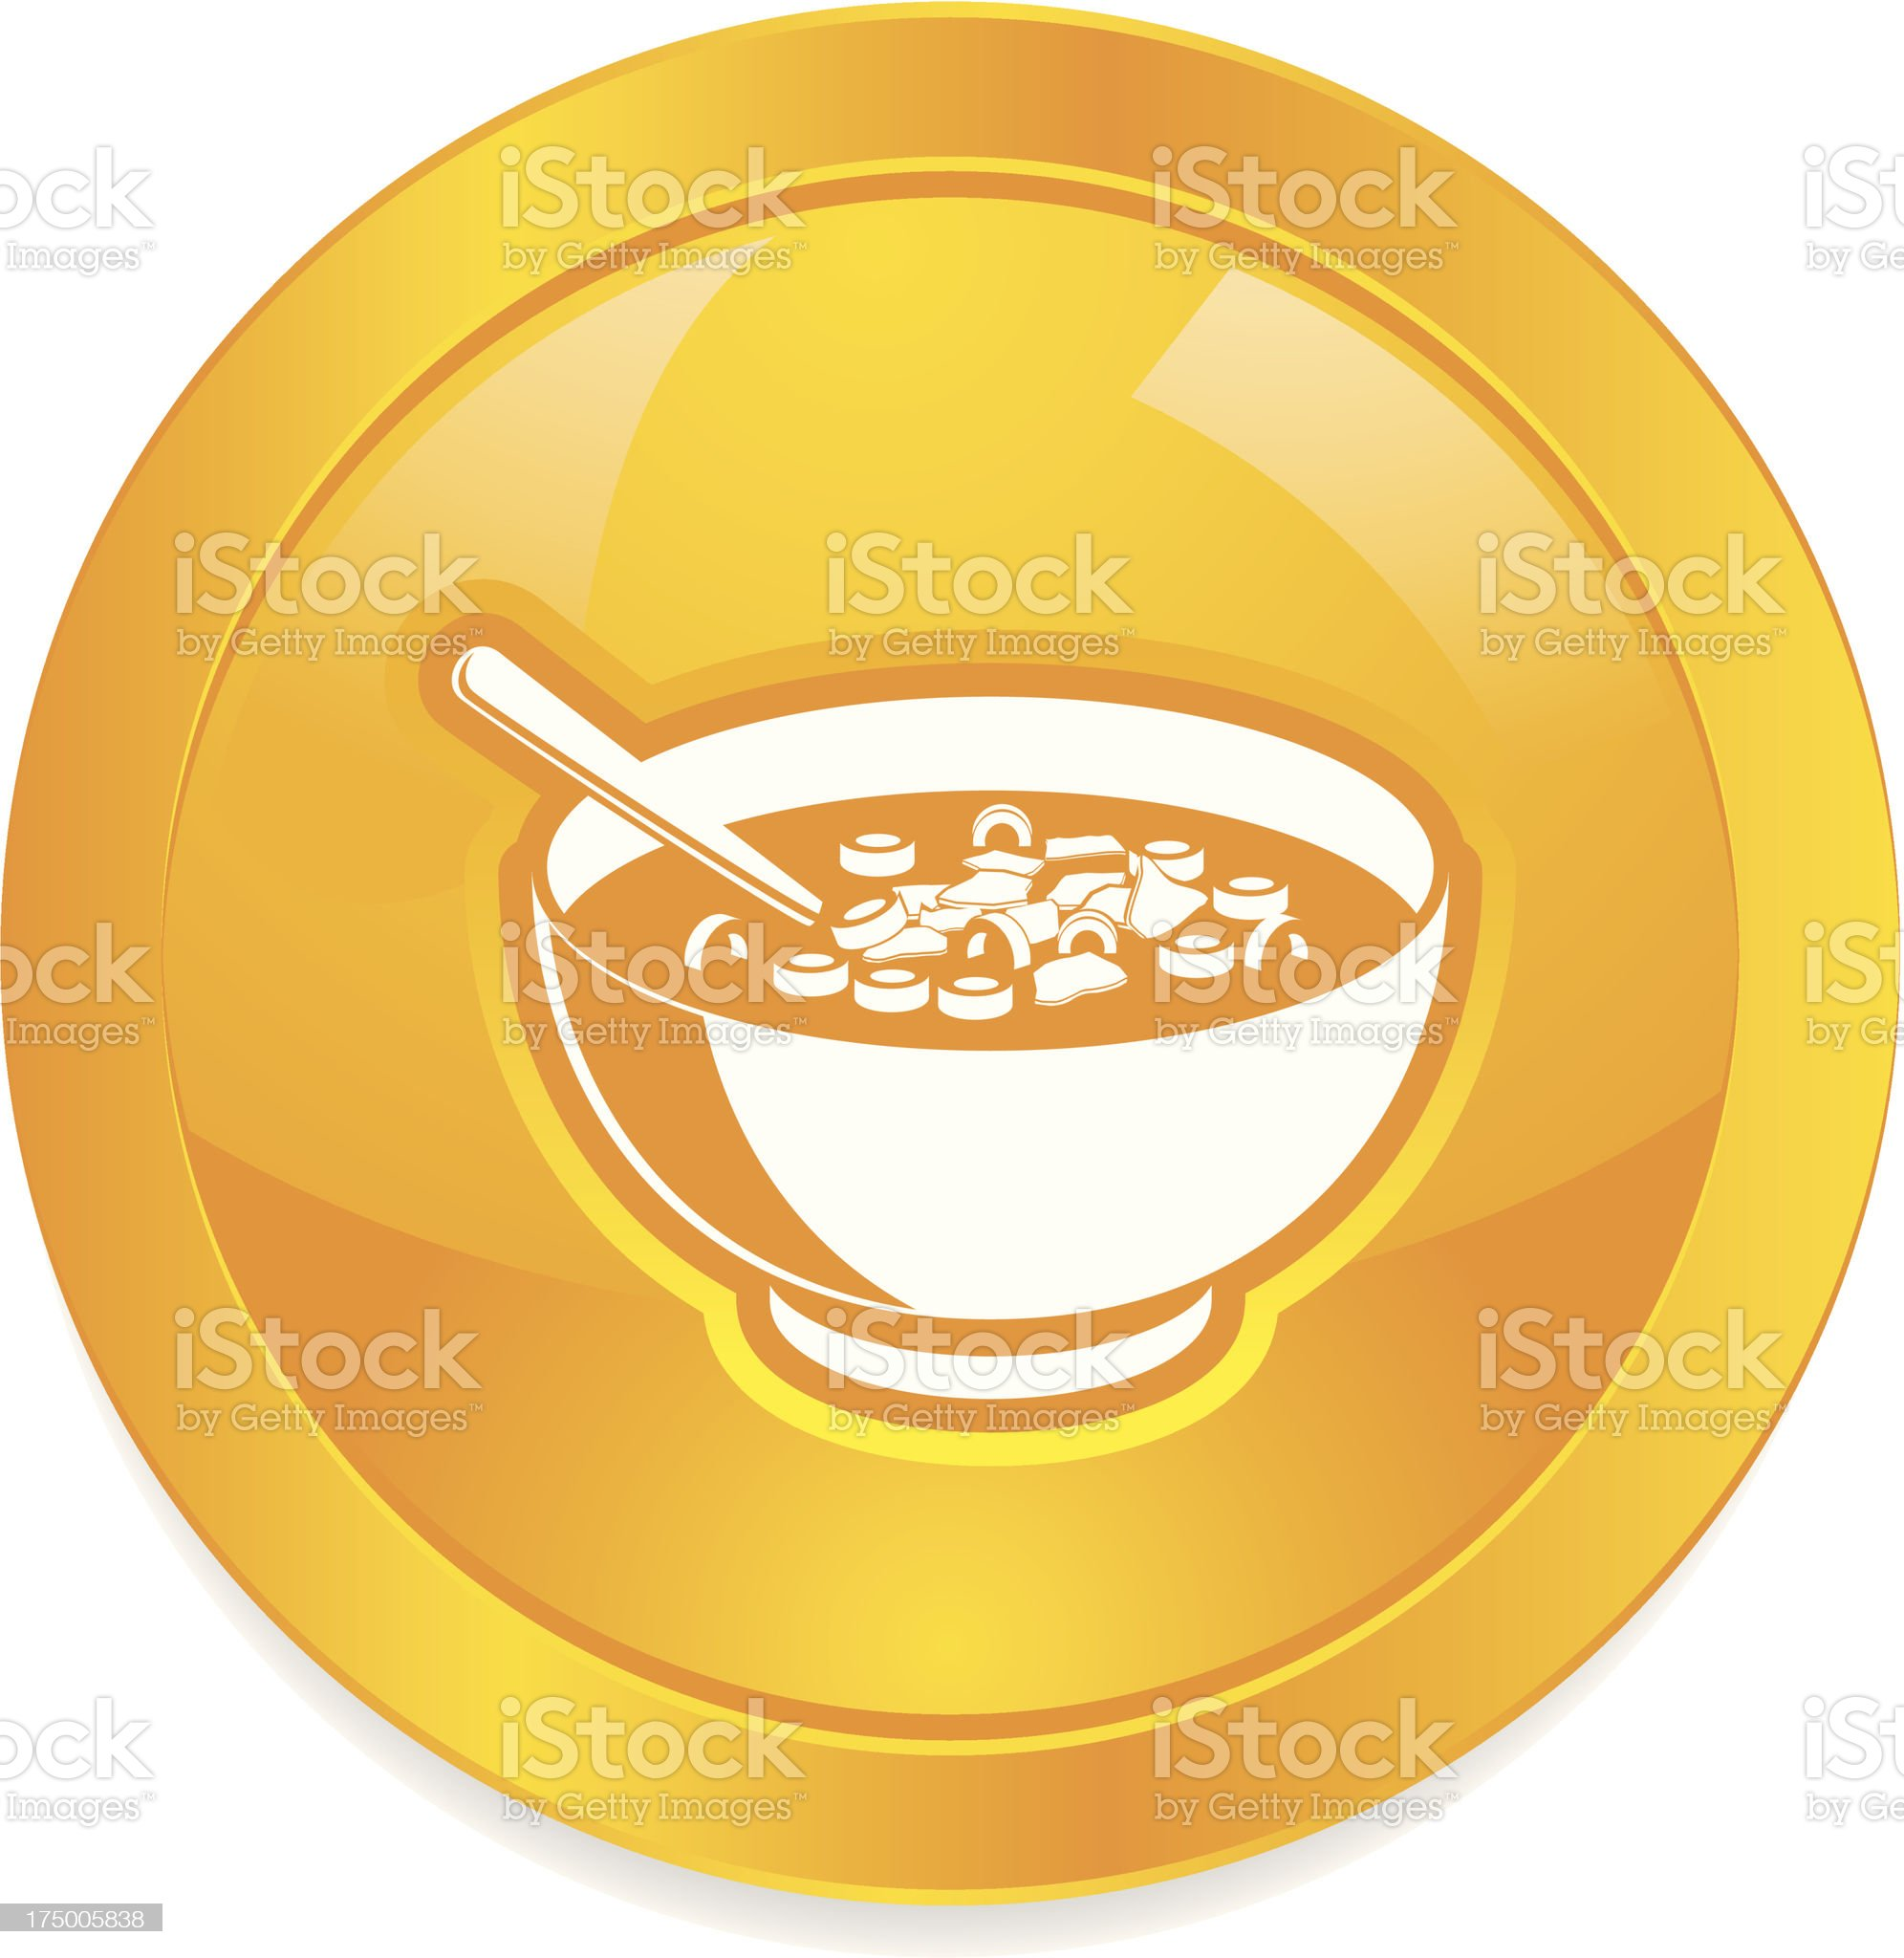 Bowl of Cereal button royalty-free stock vector art